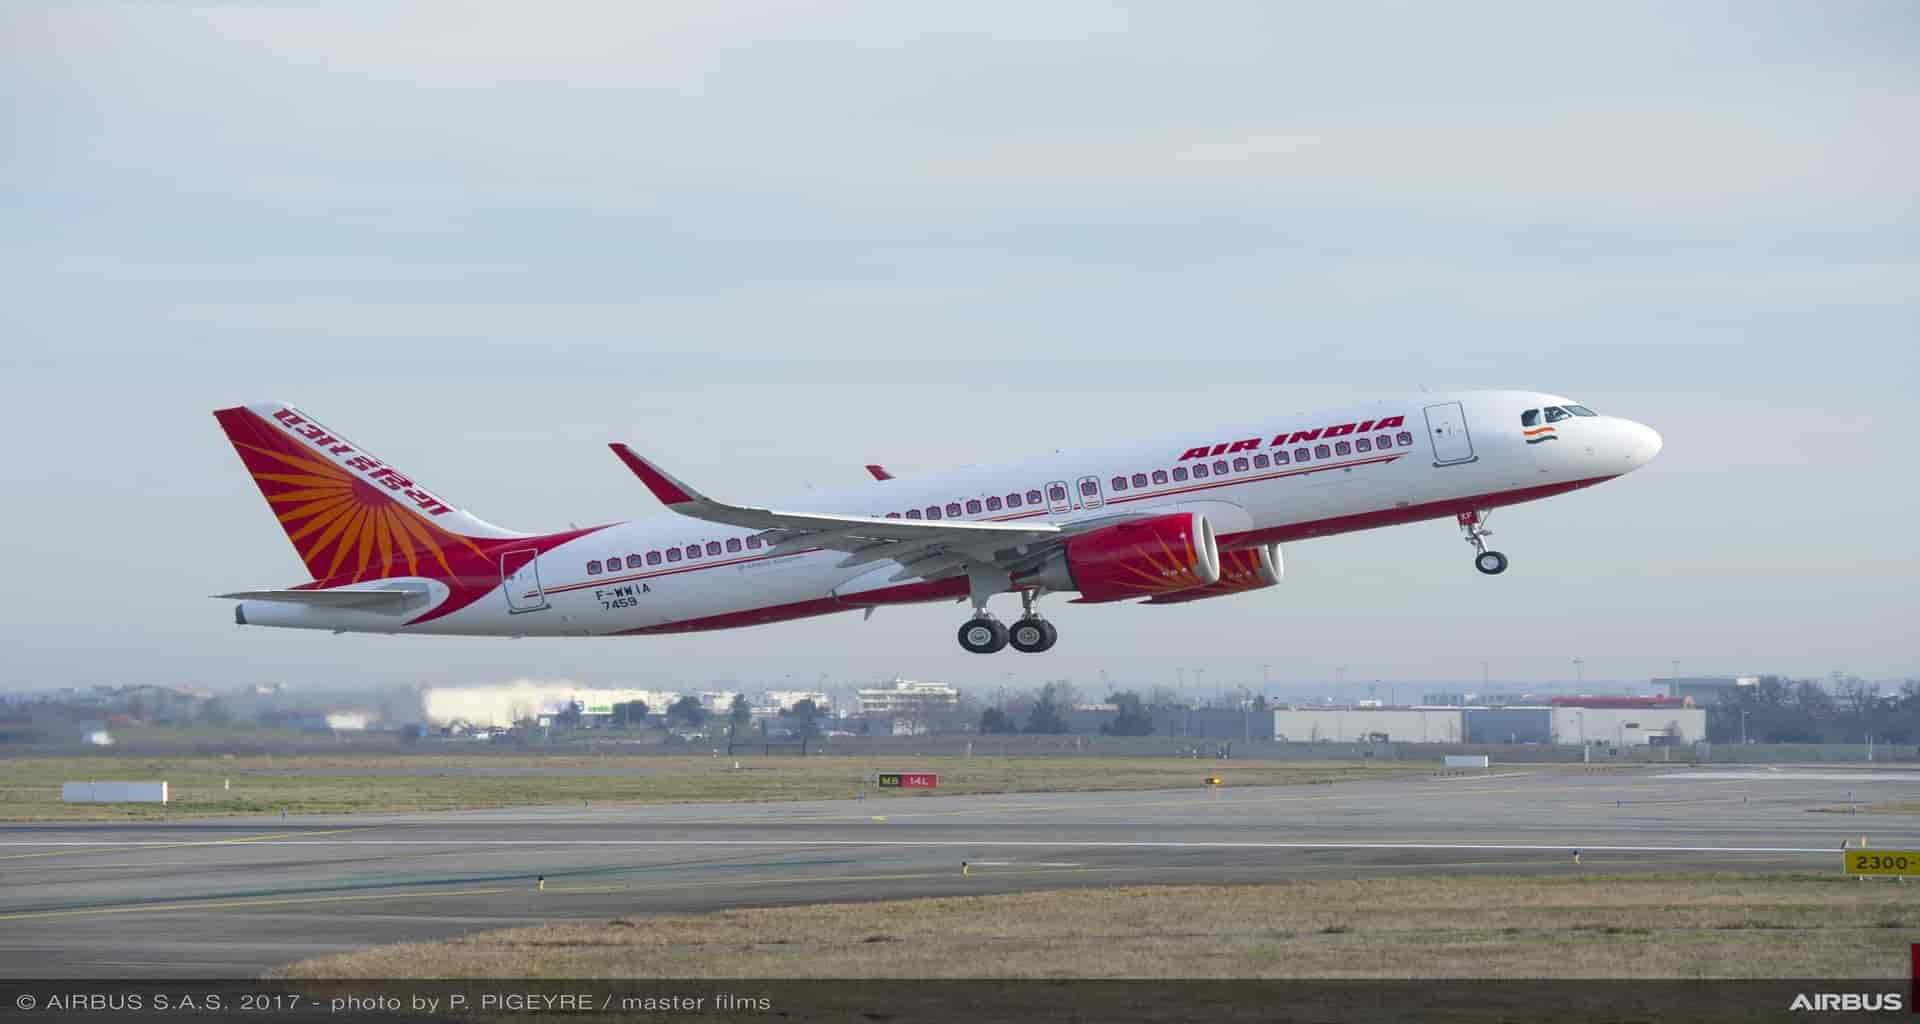 Tata Group may take over Air India, If doesn't receive any other bids